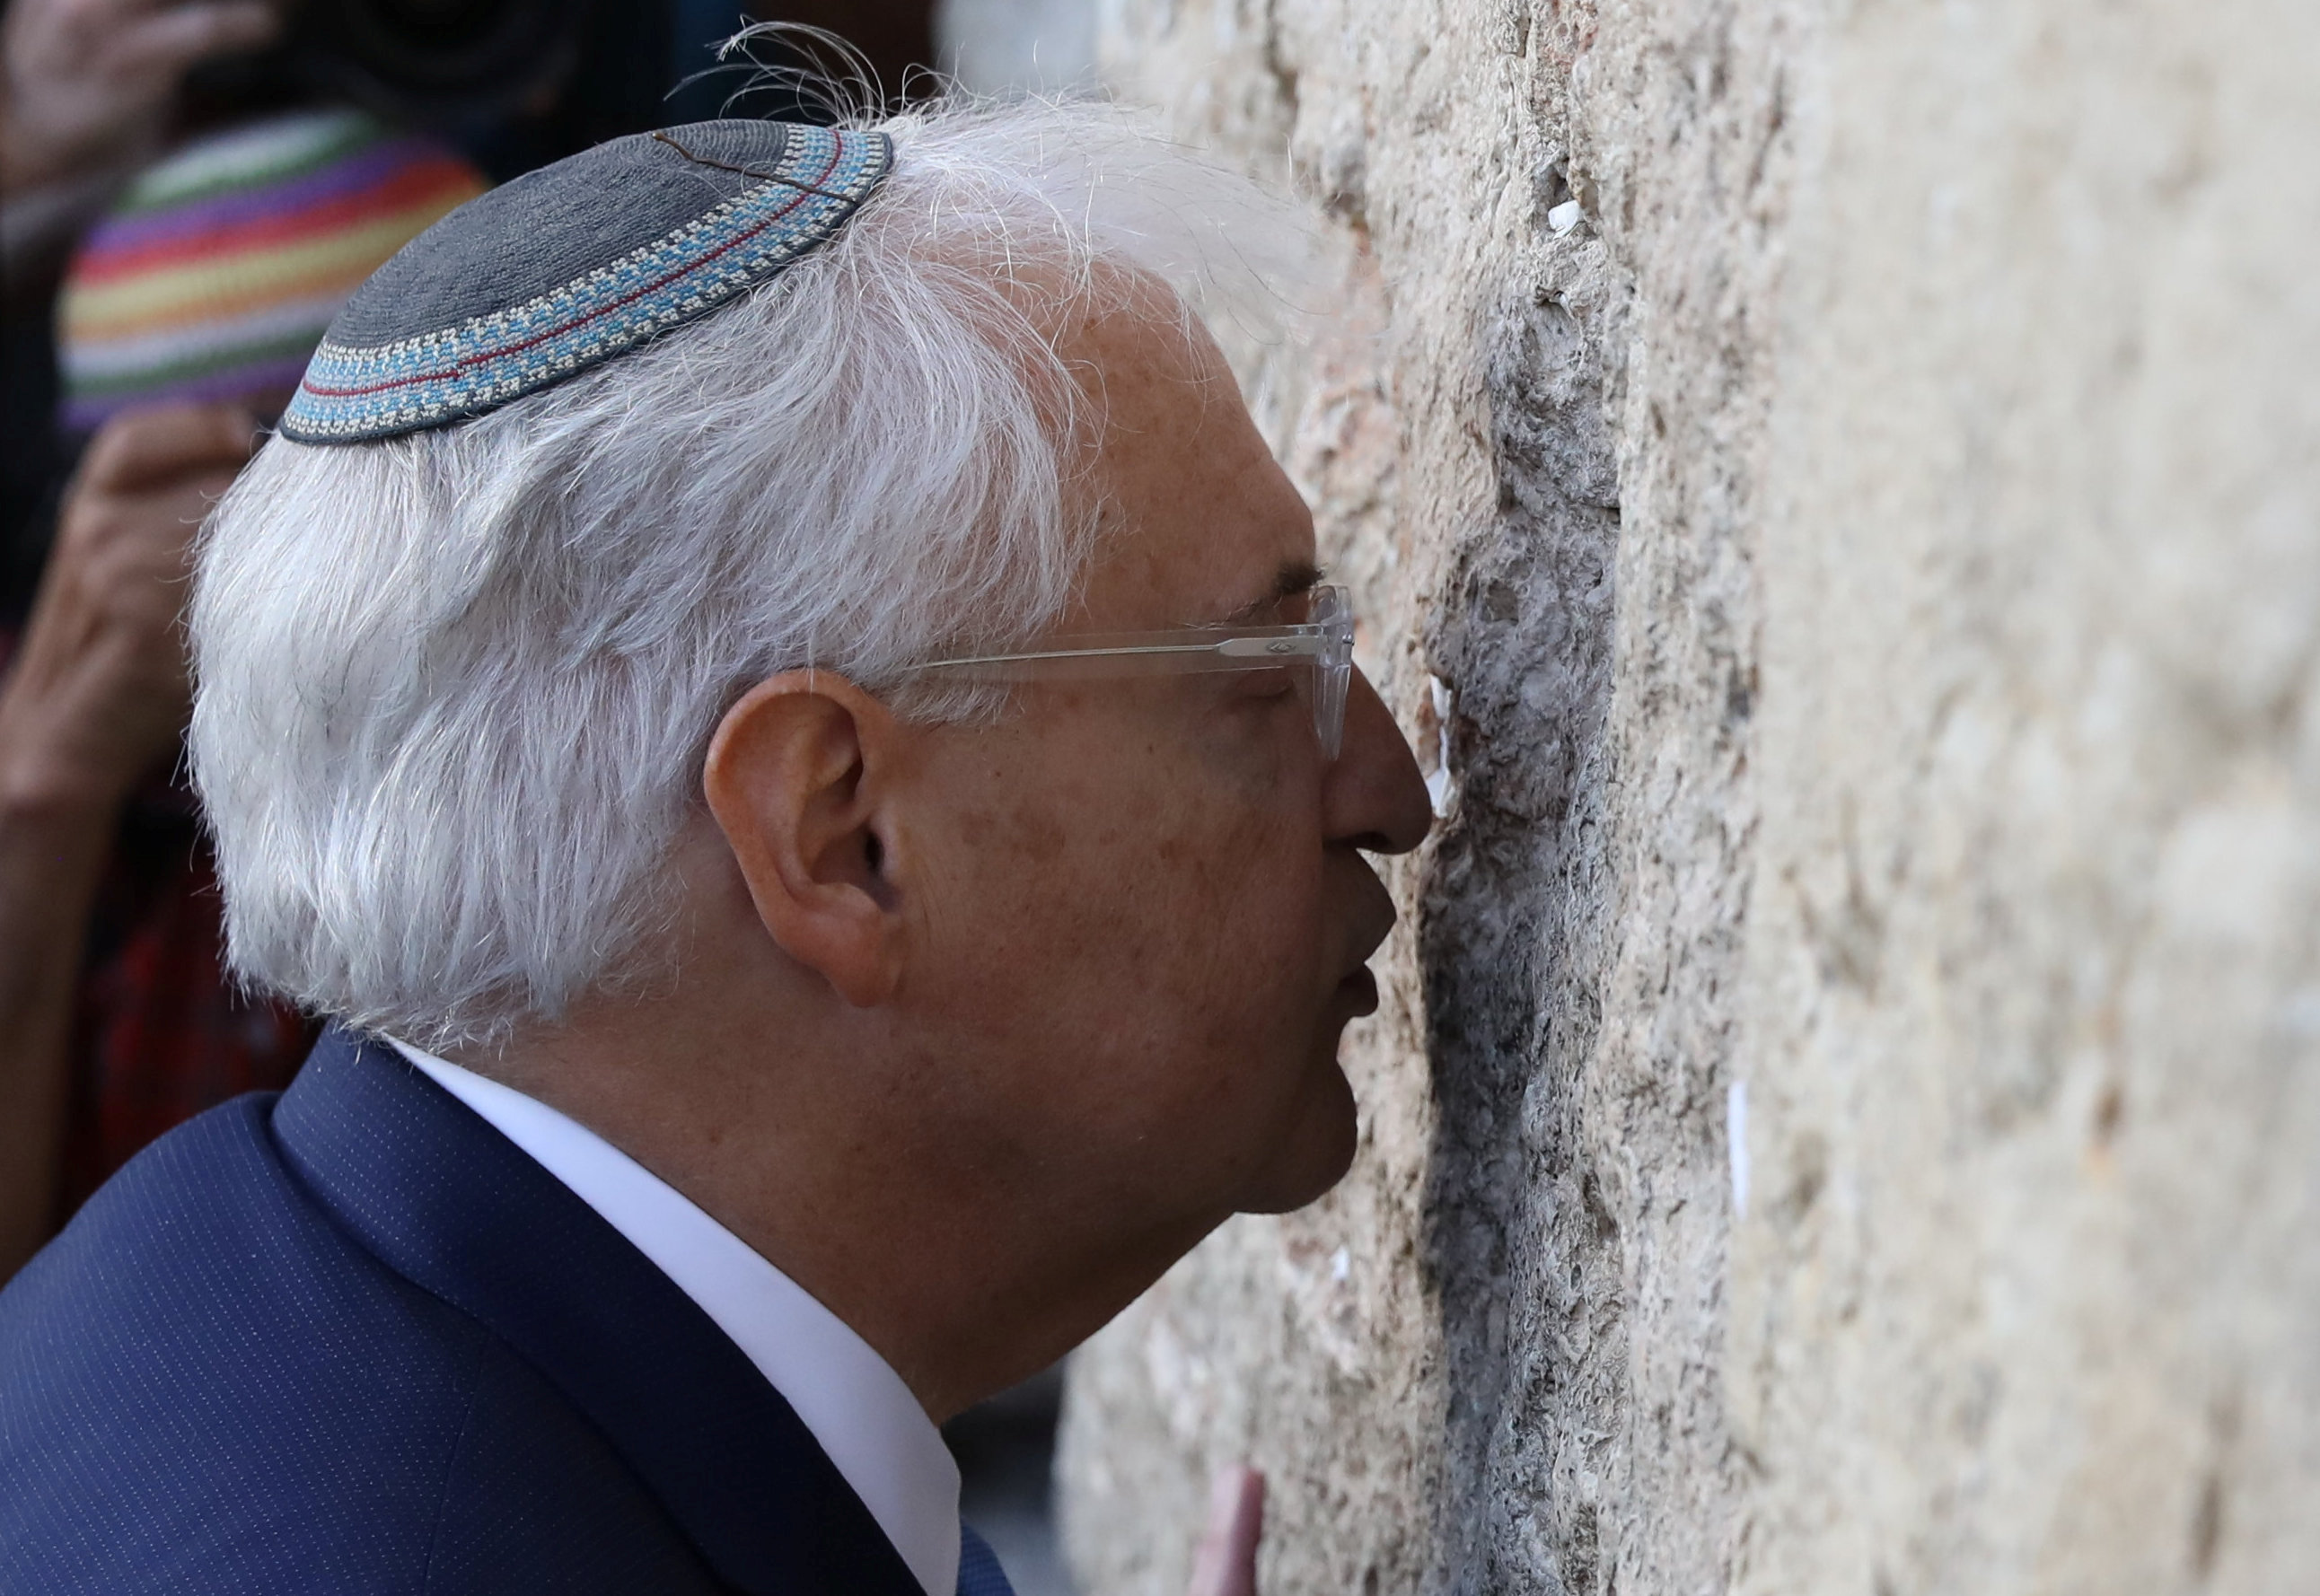 David Friedman, new United States Ambassador to Israel, kisses the Western Wall after arriving in the Jewish state on Monday and immediately paying a visit to the main Jewish holy site, in Jerusalem's Old City May 15, 2017 REUTERS/Ammar Awad